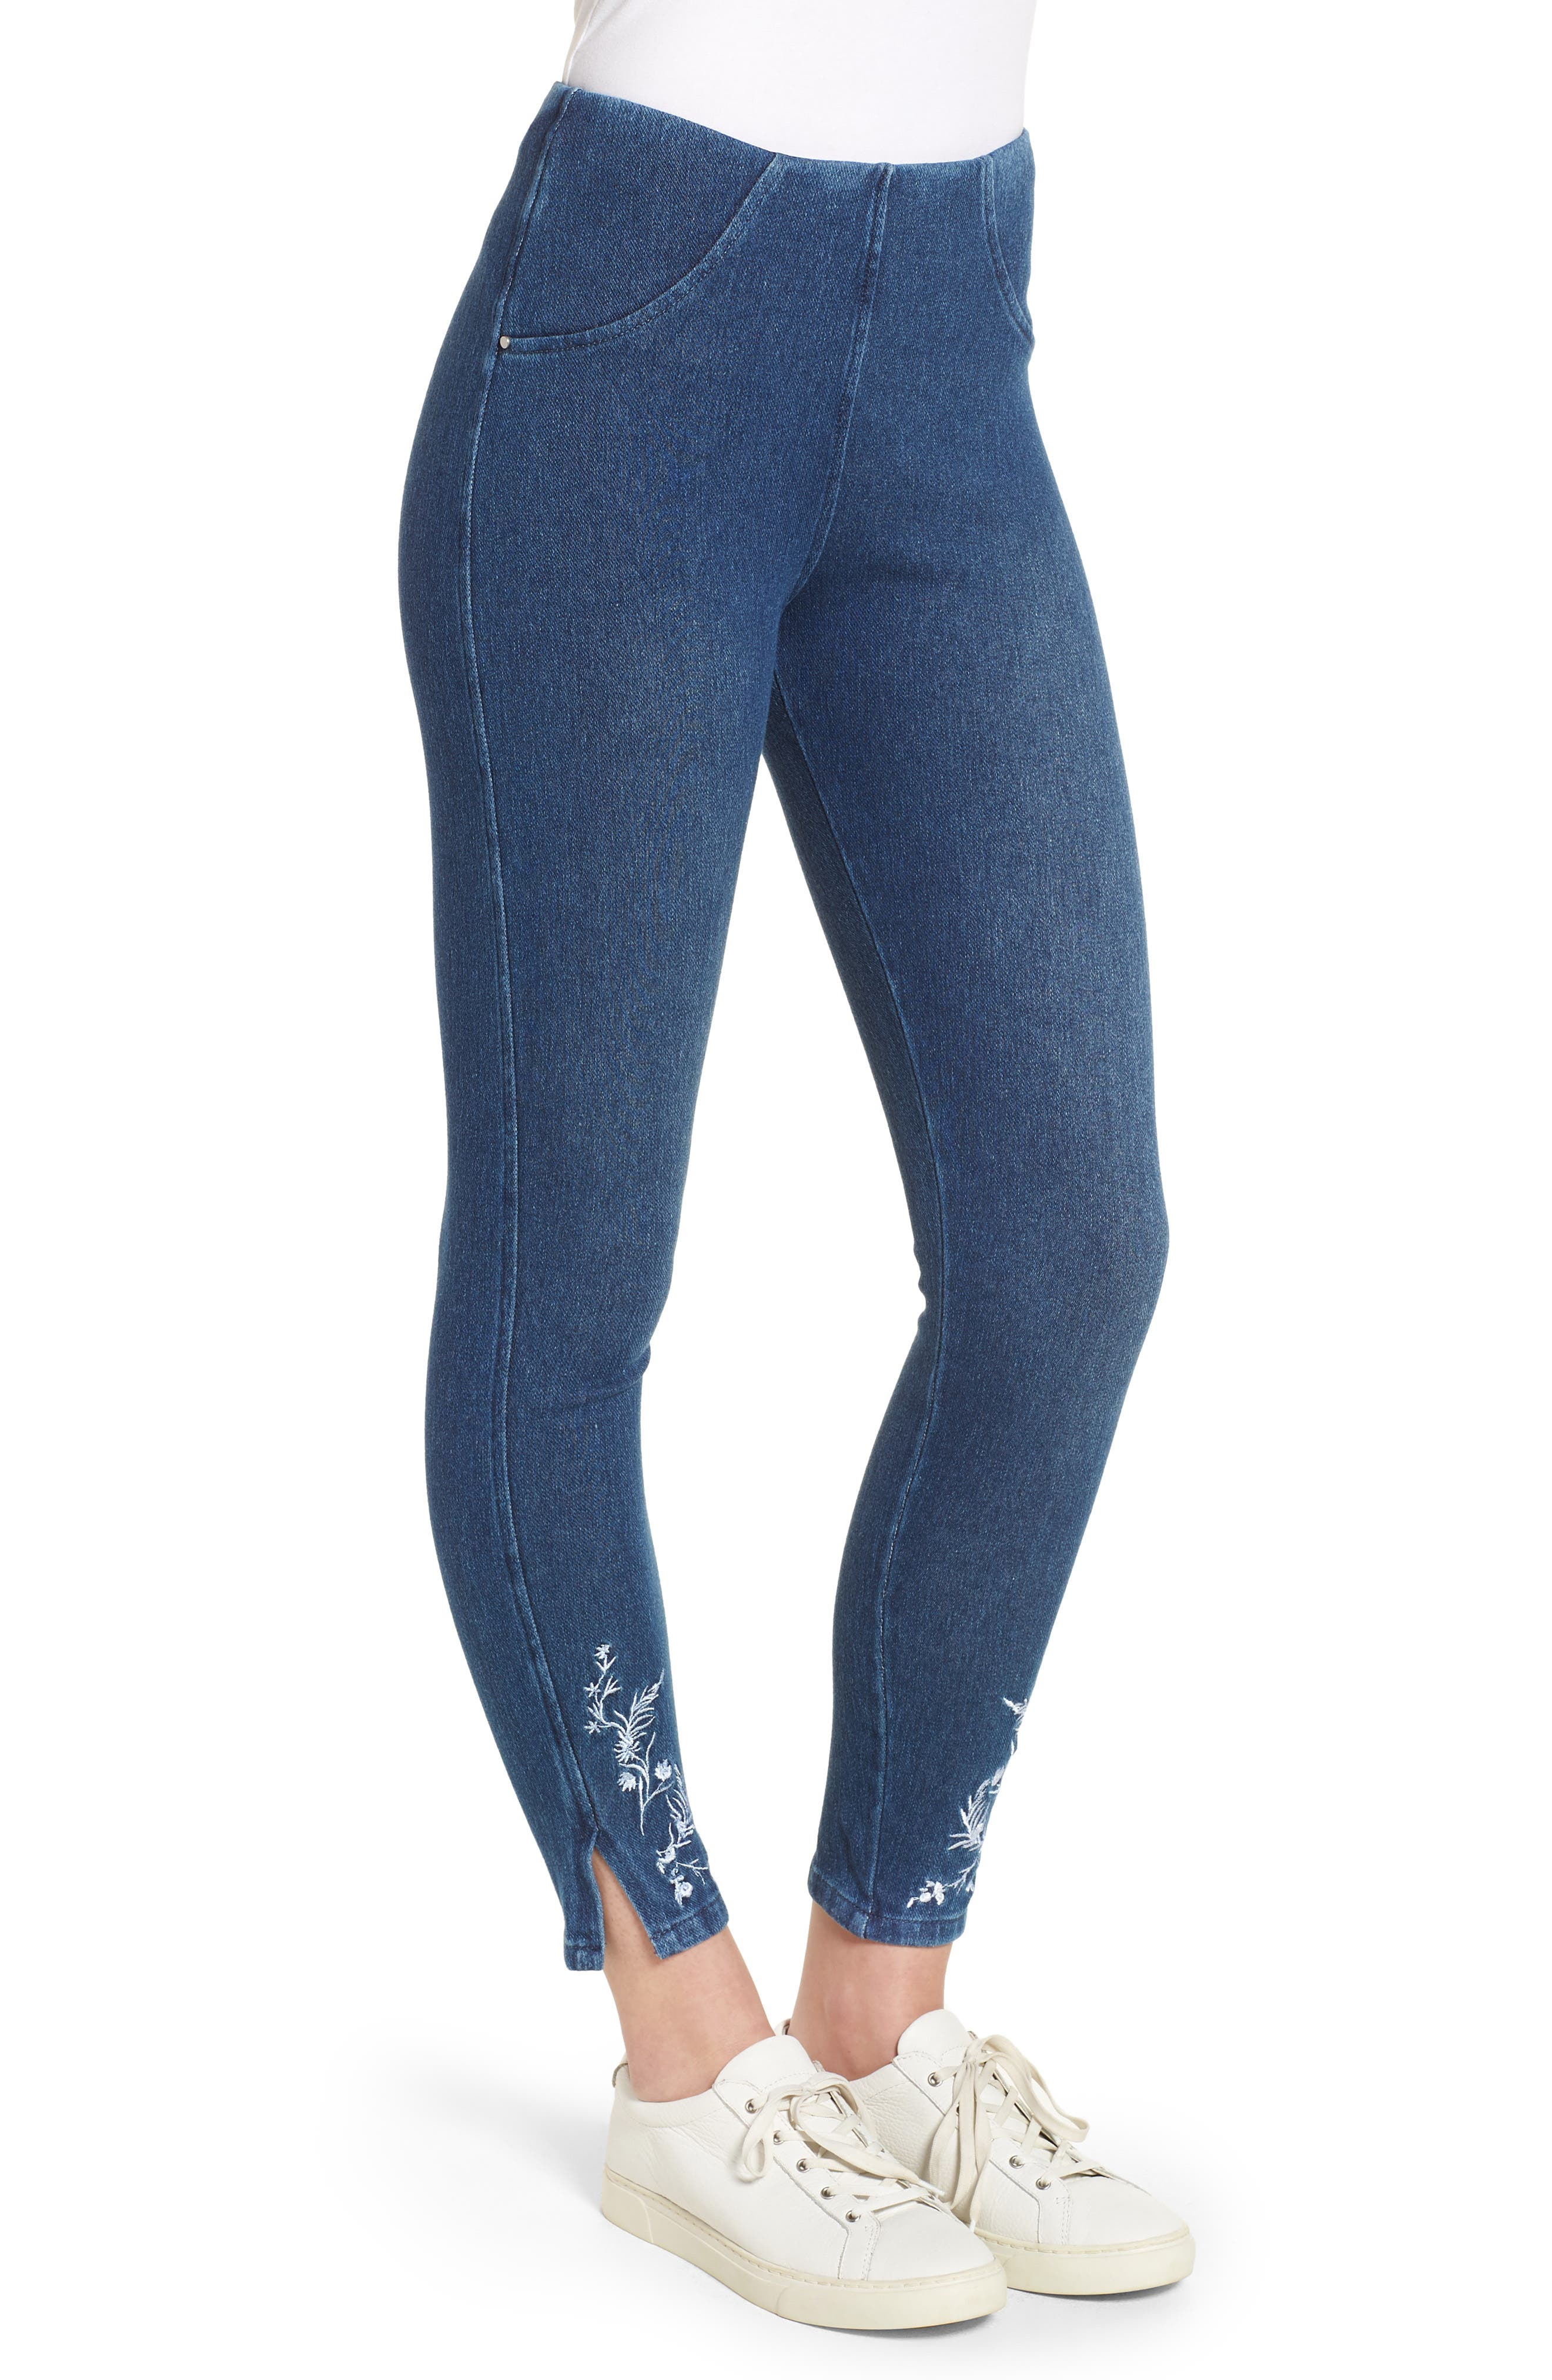 Cooper High Waist Denim Leggings,                             Alternate thumbnail 3, color,                             400